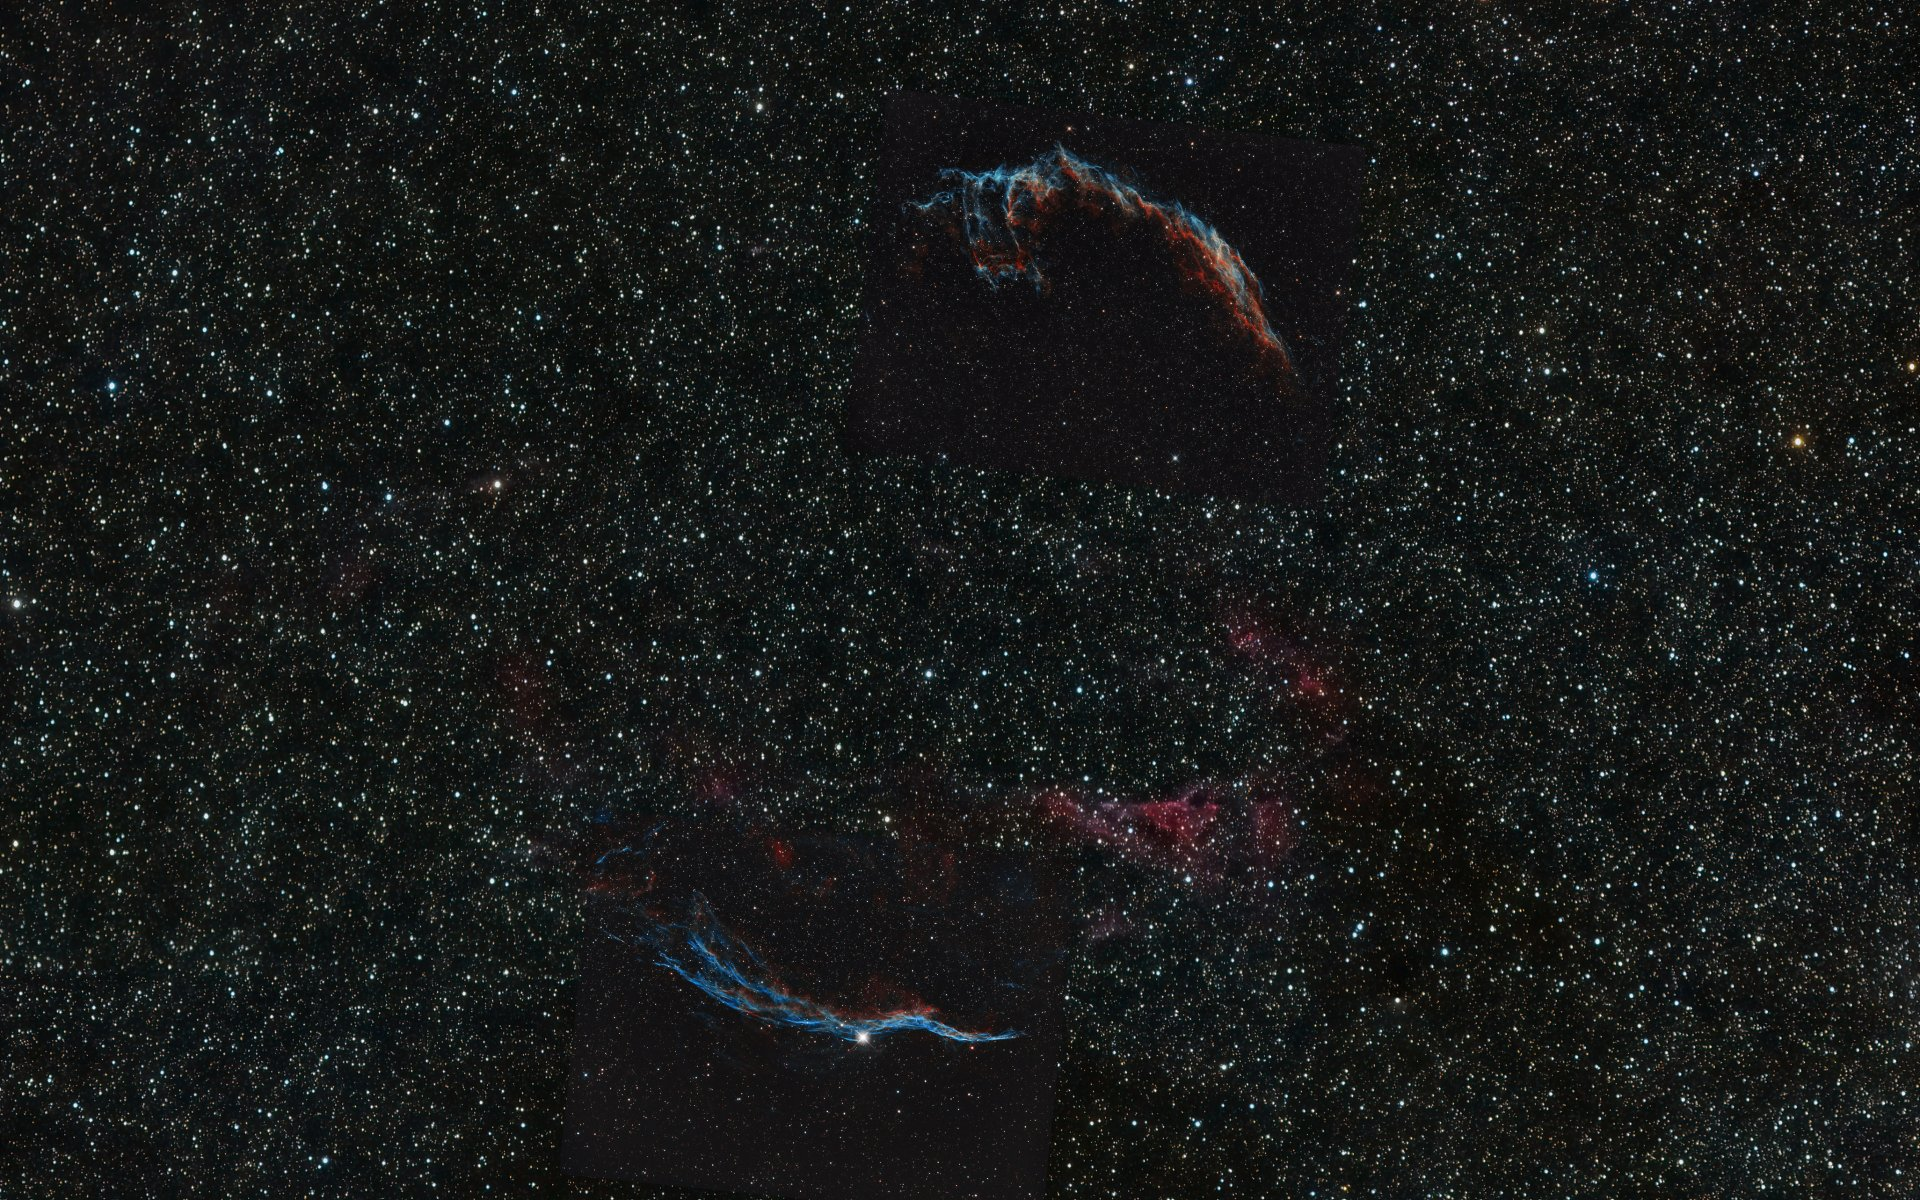 ngc6960_6992_180mm_combined_web.jpg